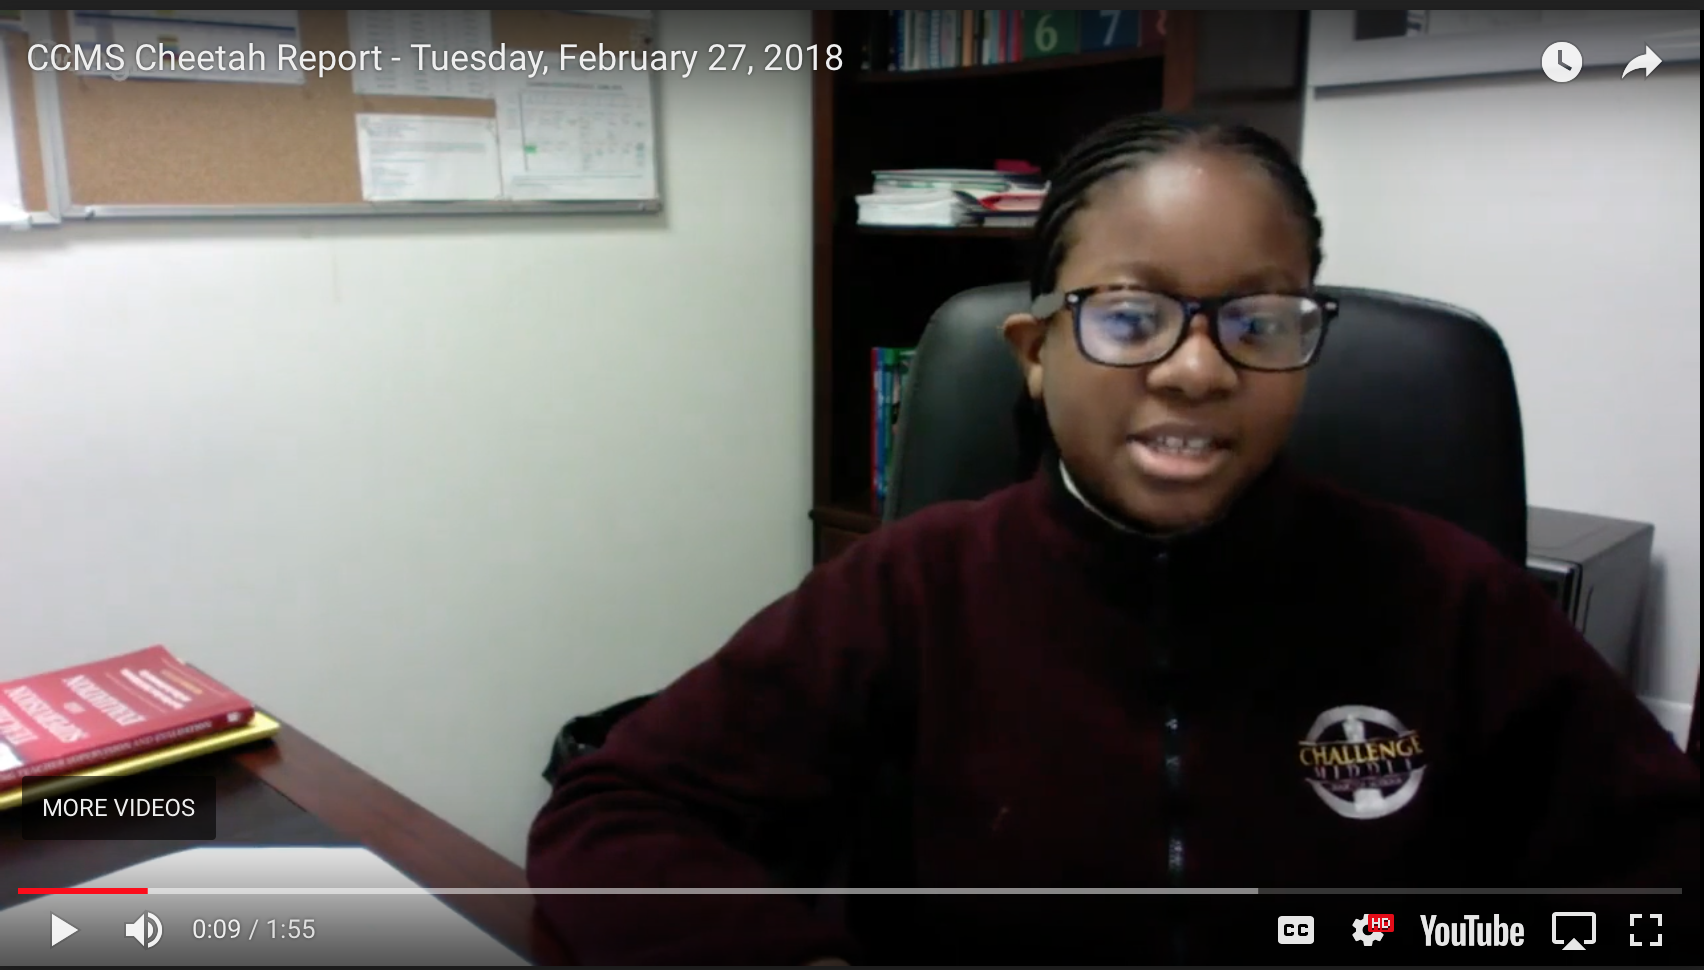 Middle School Scholars give the daily Cheetah Report.